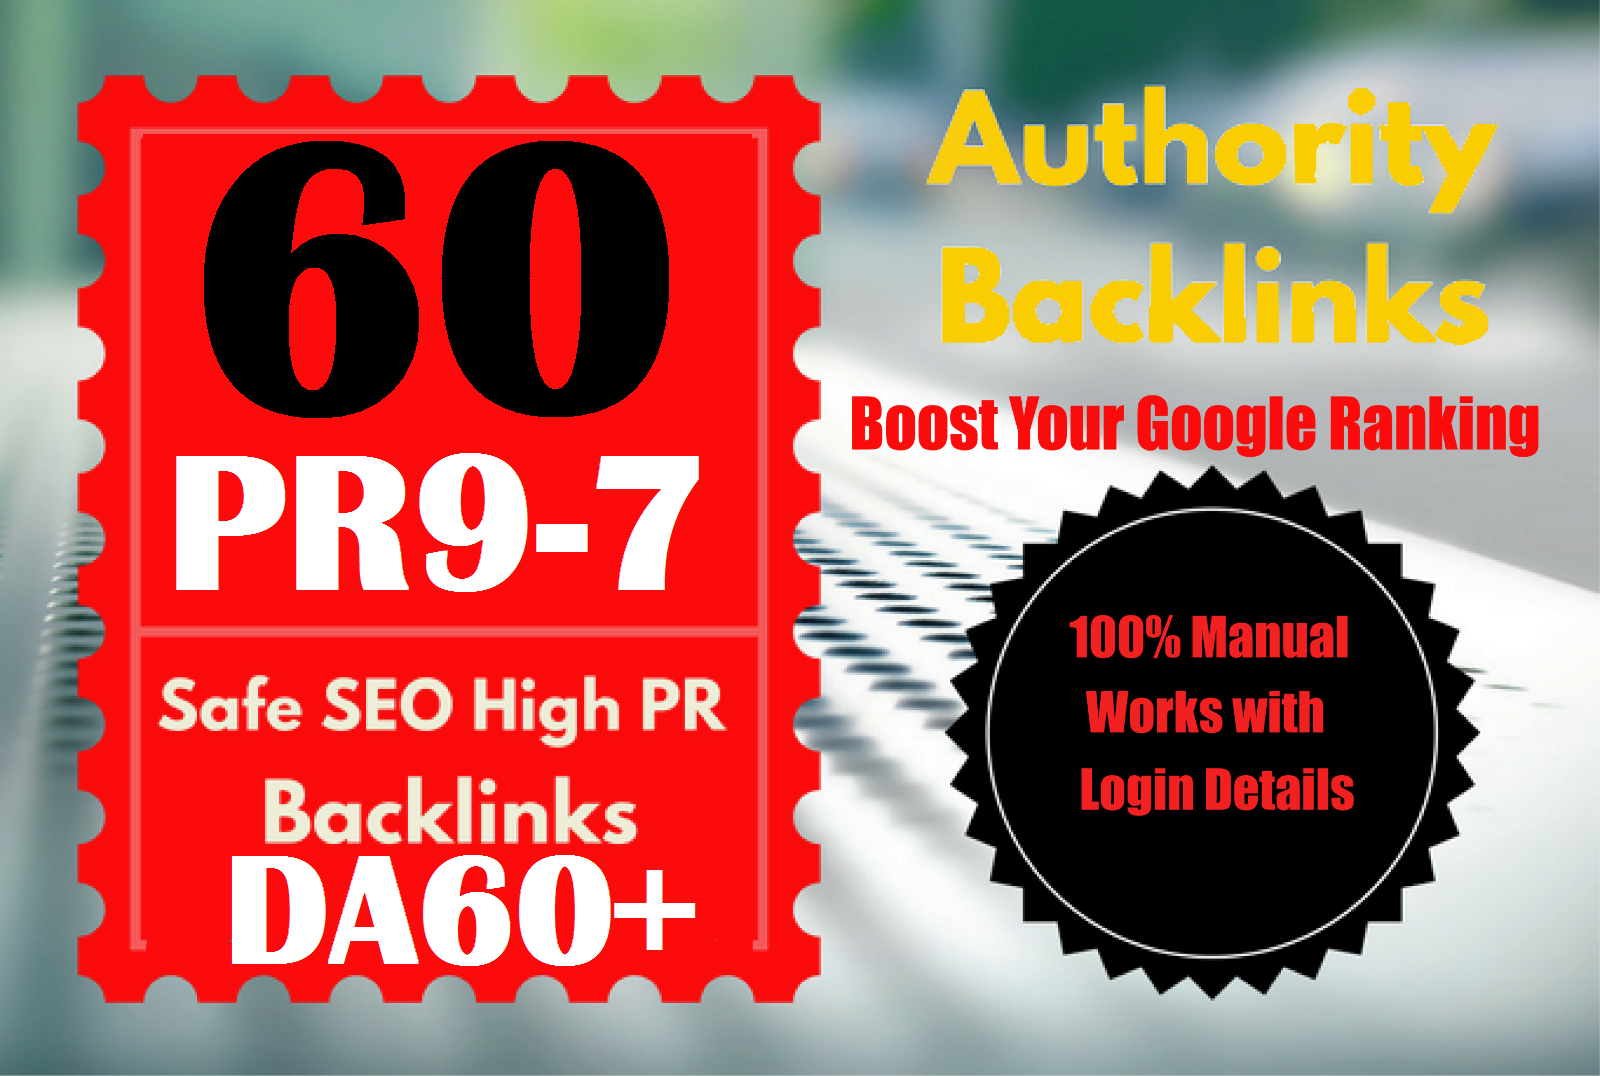 Manually Create TOP 60 DA60+ HQ Profile Backlinks to increase SERP SEO WEB Ranking